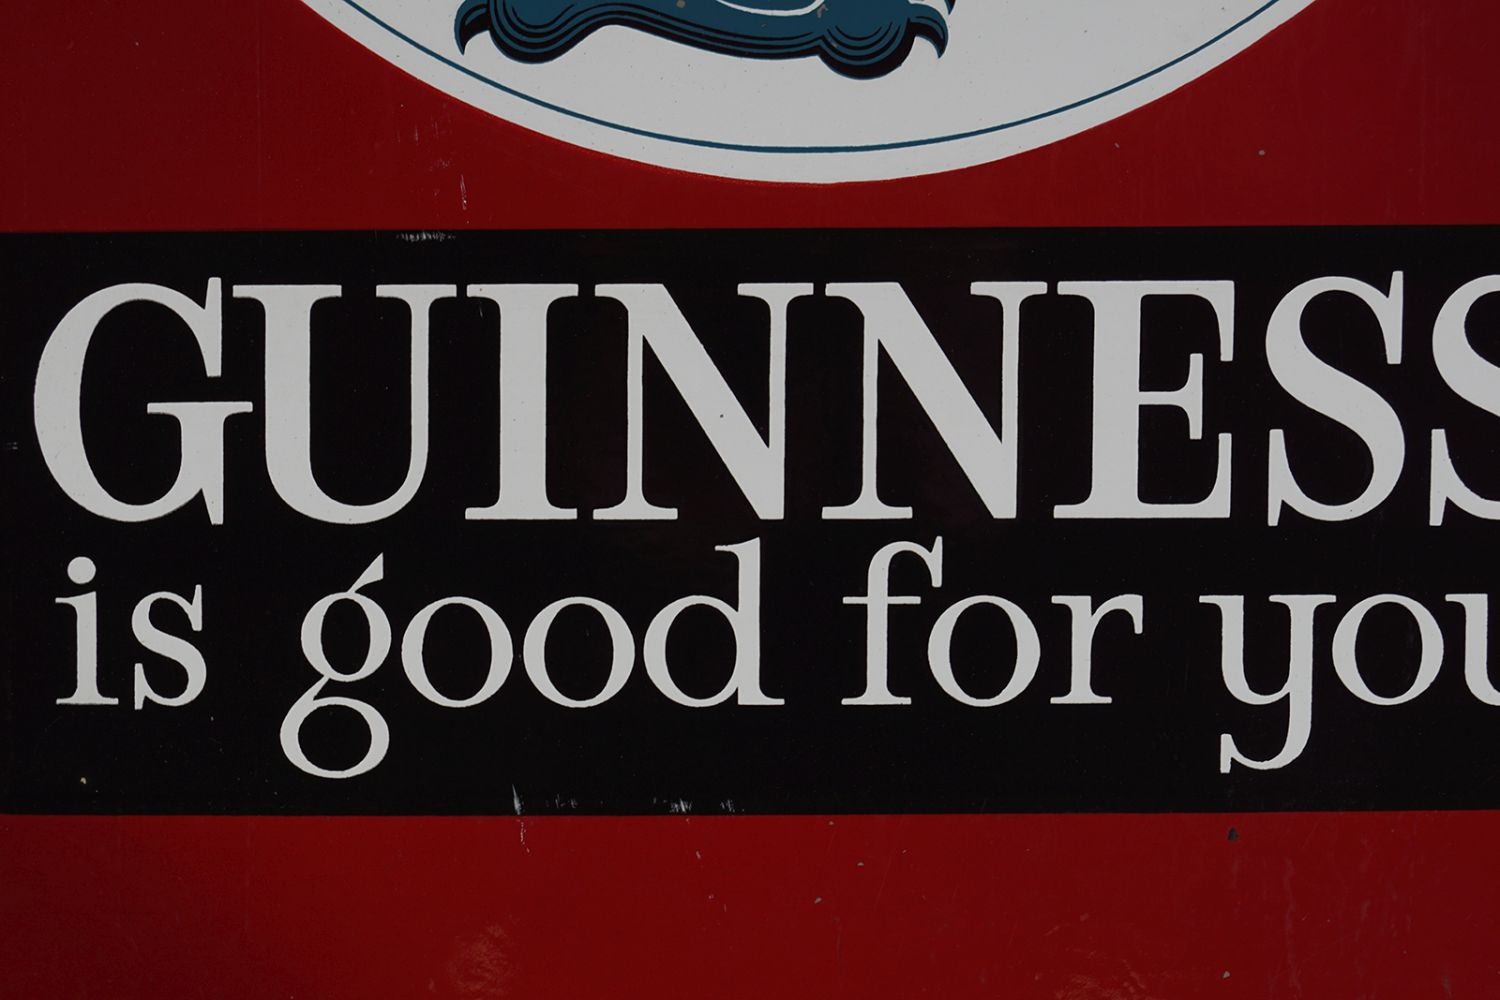 GUINNESS IS GOOD FOR YOU ORIGINAL SIGN - Image 3 of 5